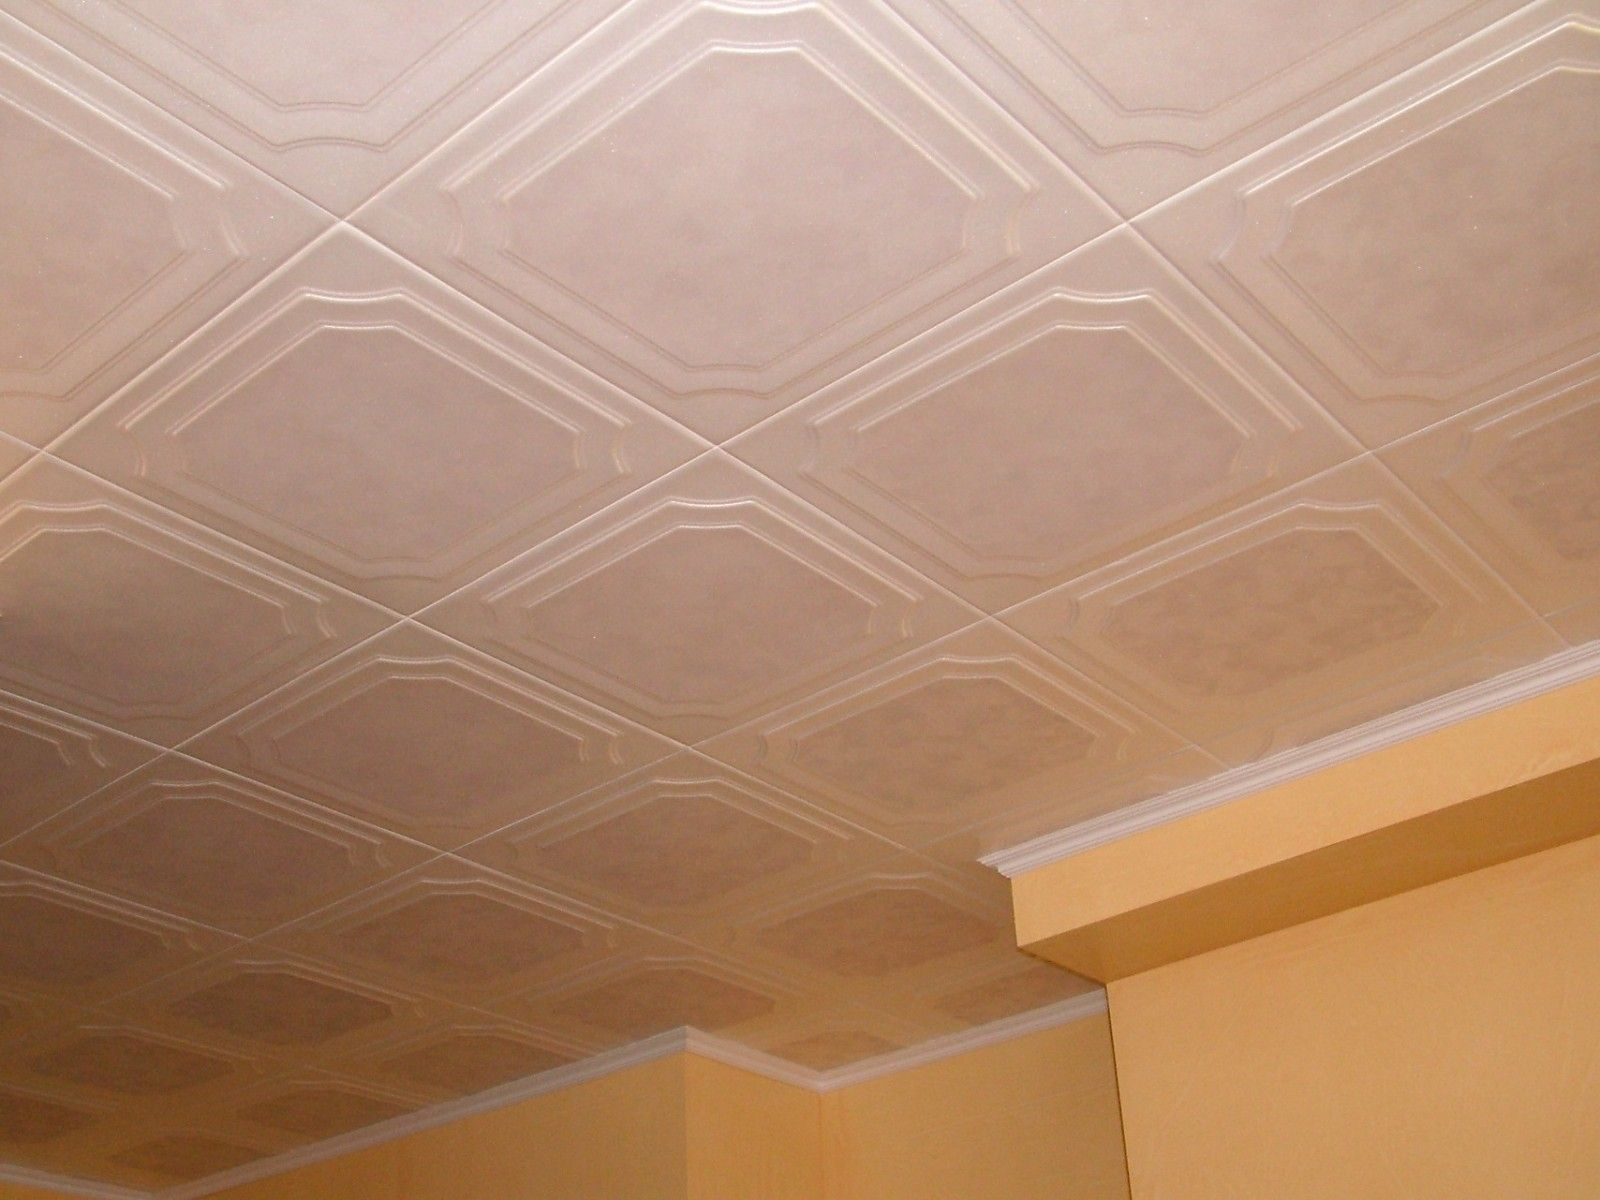 Polystyrene ceiling panels south africa hbm blog ceiling tiles south africa integralbook com suppliers in johannesburg www energywarden net dailygadgetfo Image collections